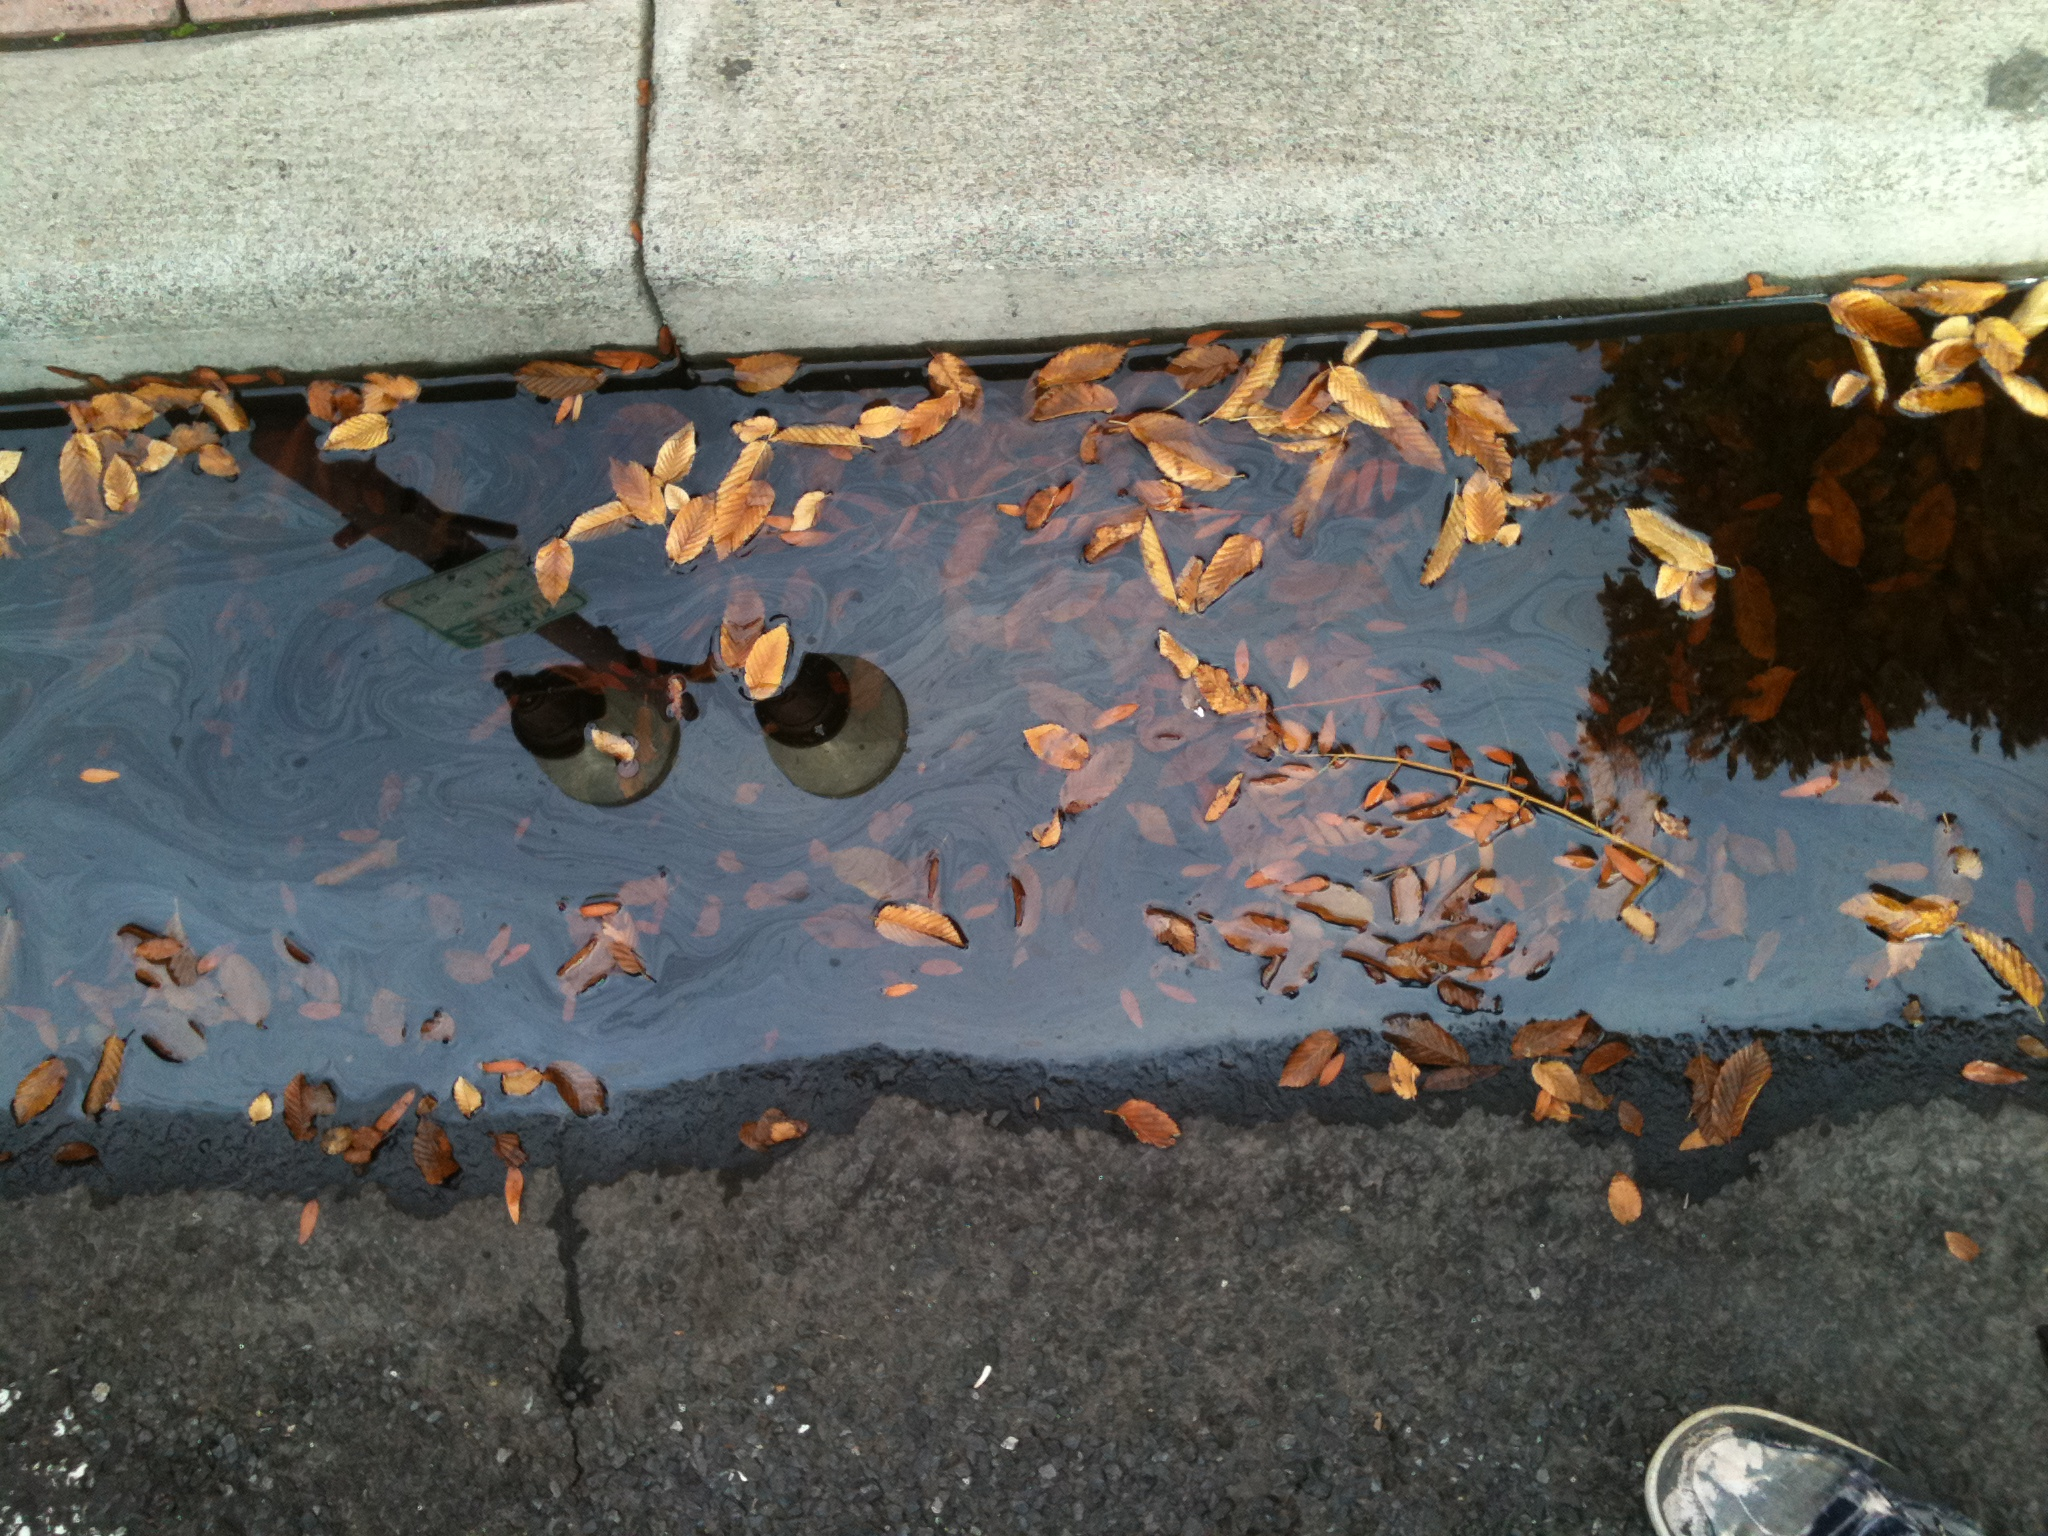 Leaves in gutter